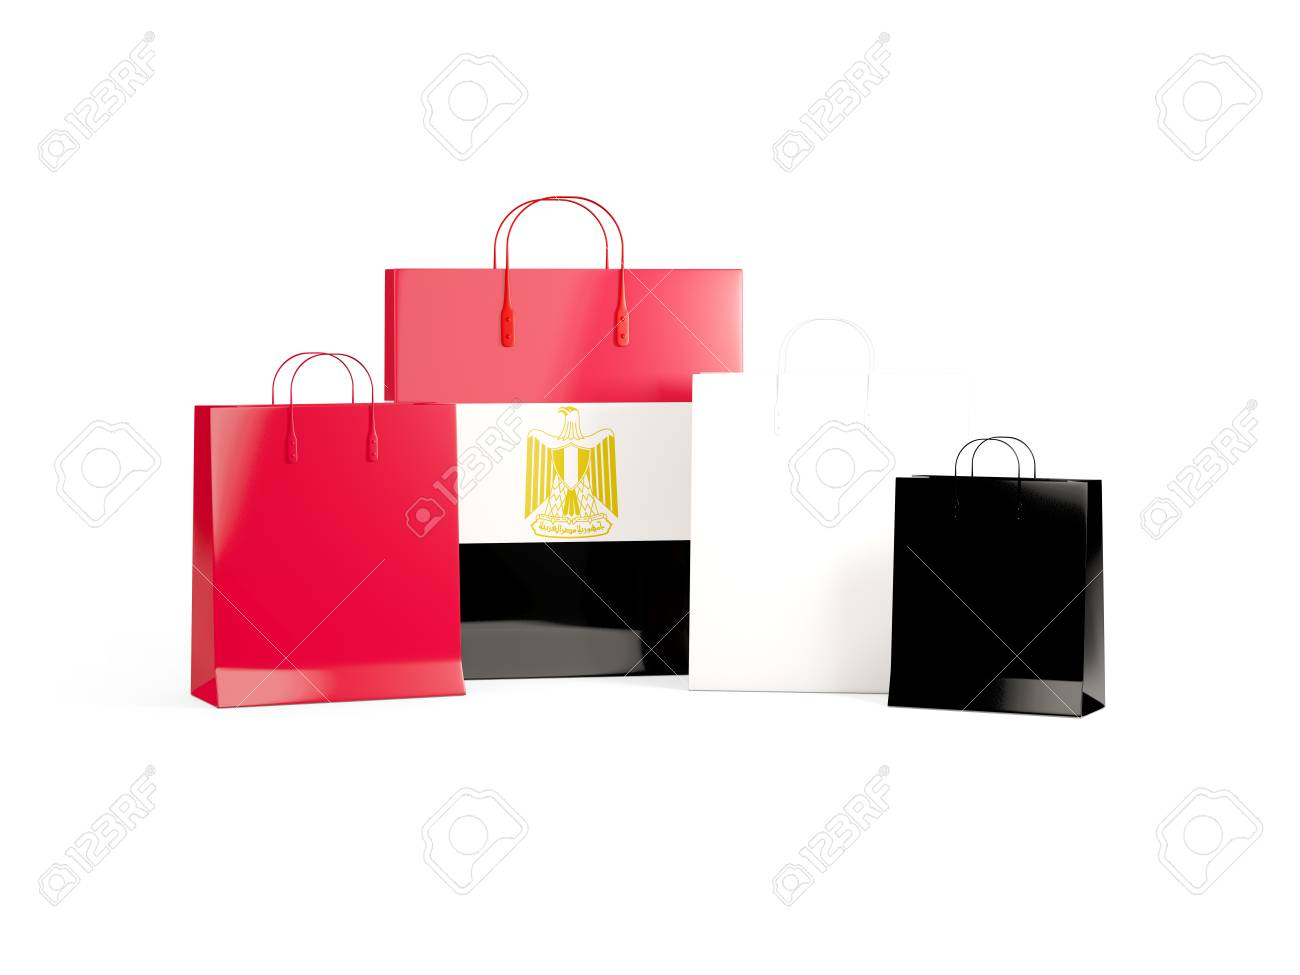 Flag Of Egypt On Shopping Bags 3d Illustration Stock Photo Picture